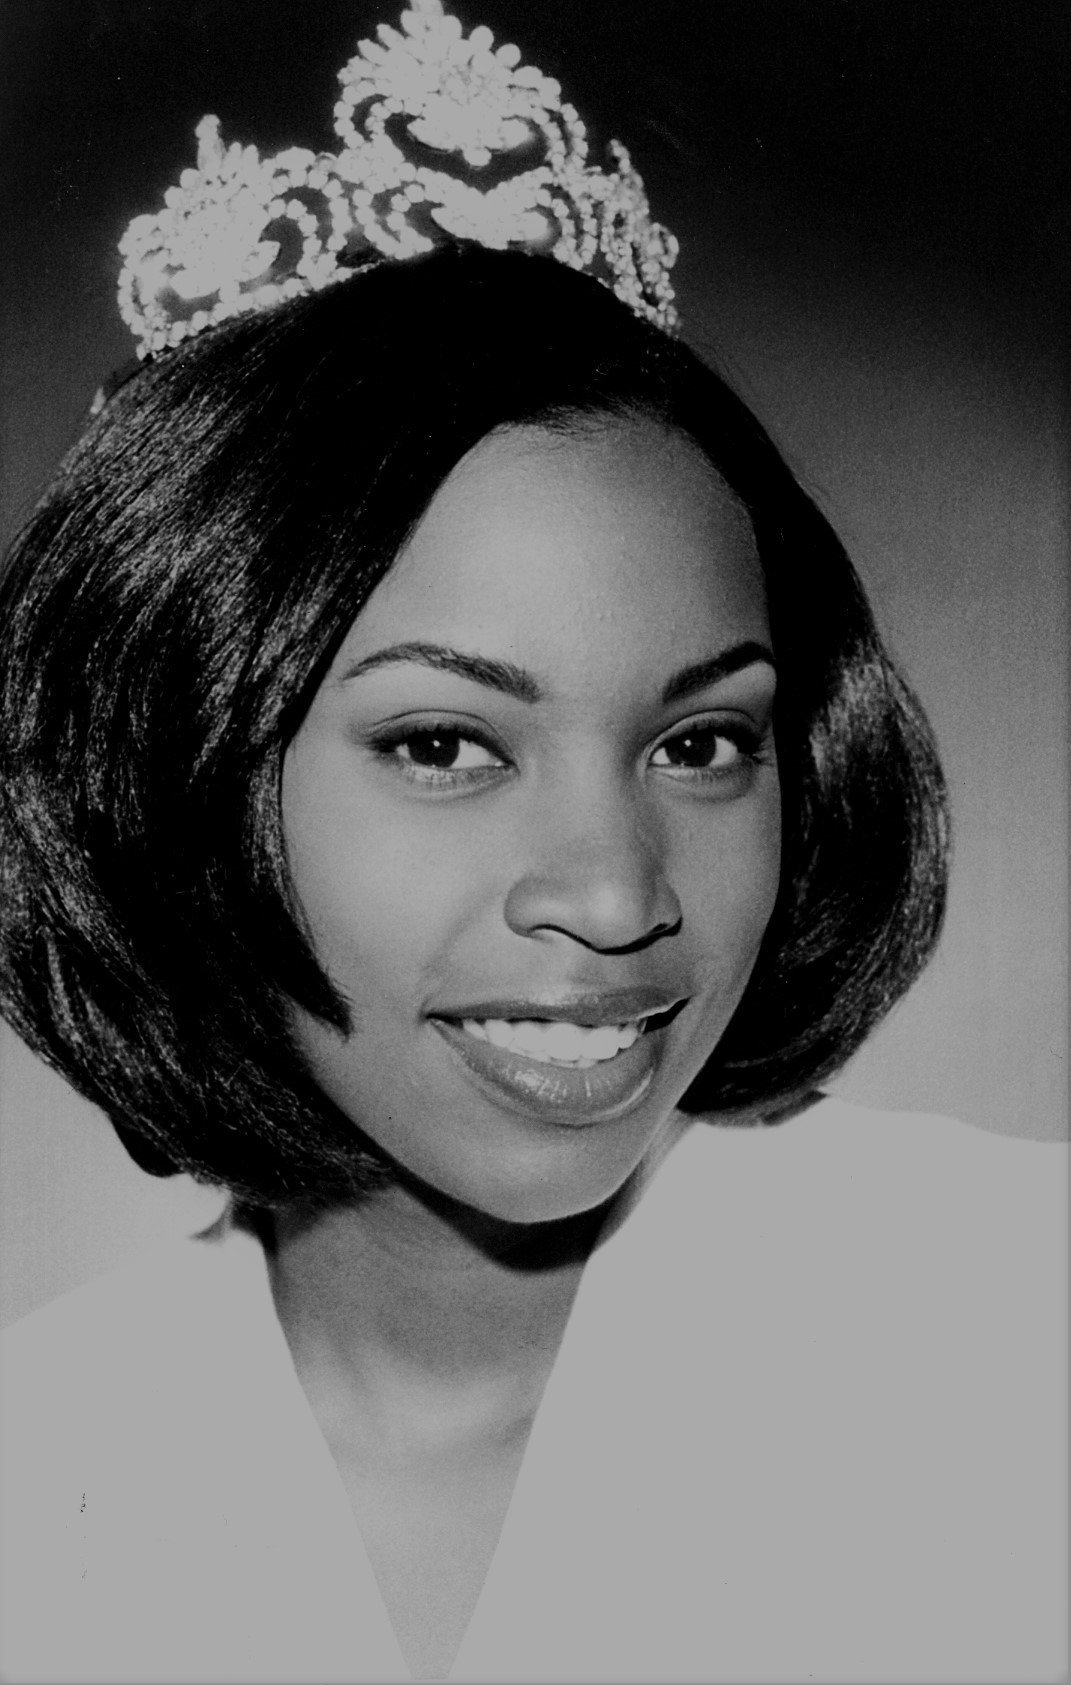 KRISTEN AIKEN-  MISS SPELMAN UNIVERSITY.  She graduated from college and is a UNITED STATES PROSECUTOR .